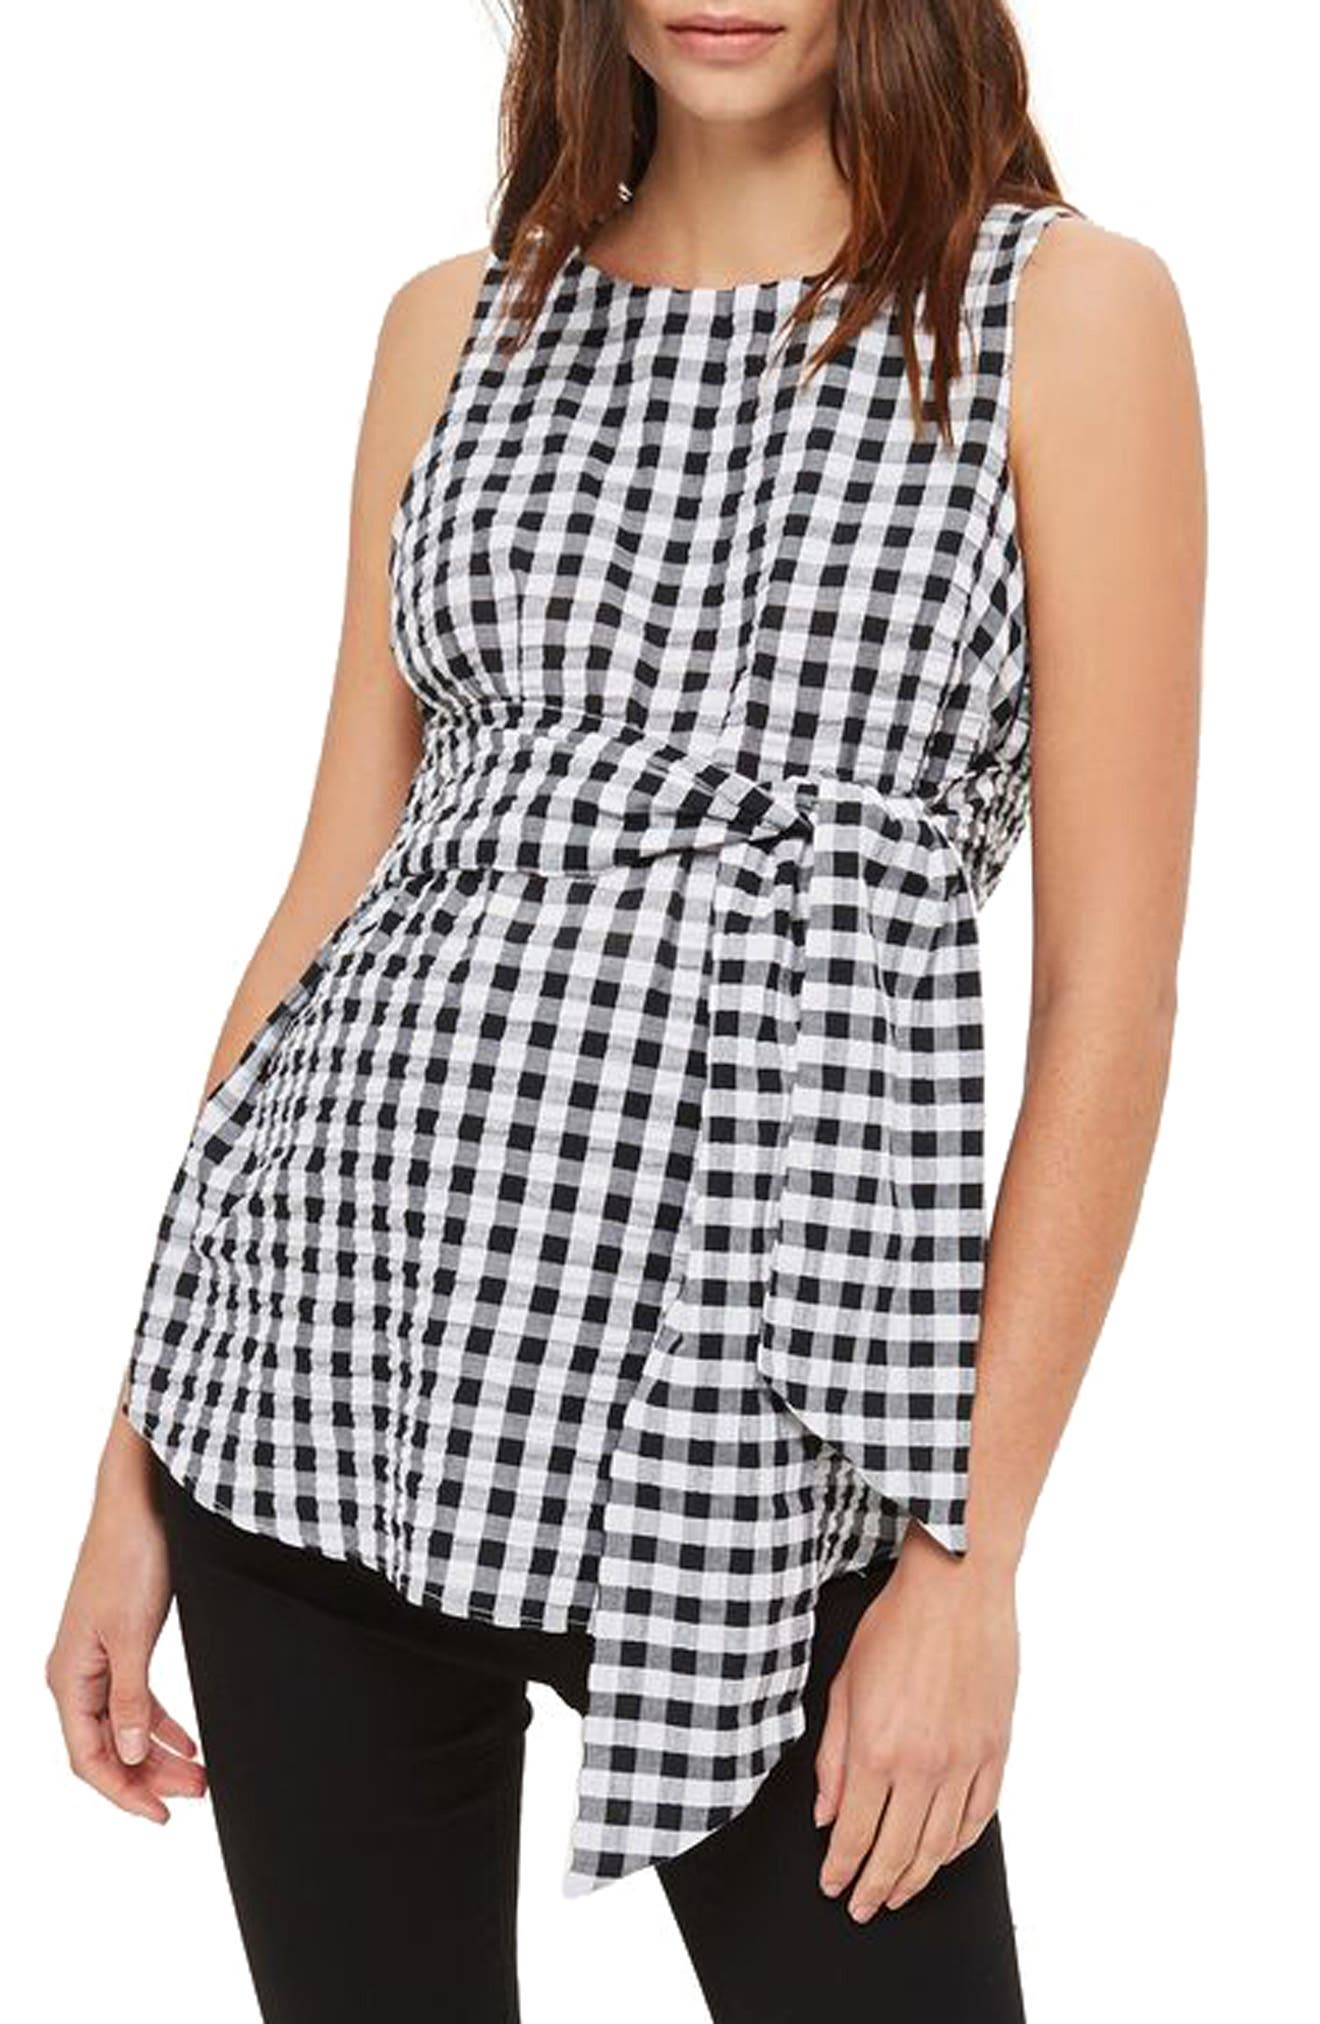 Topshop Gingham Tie Maternity Top